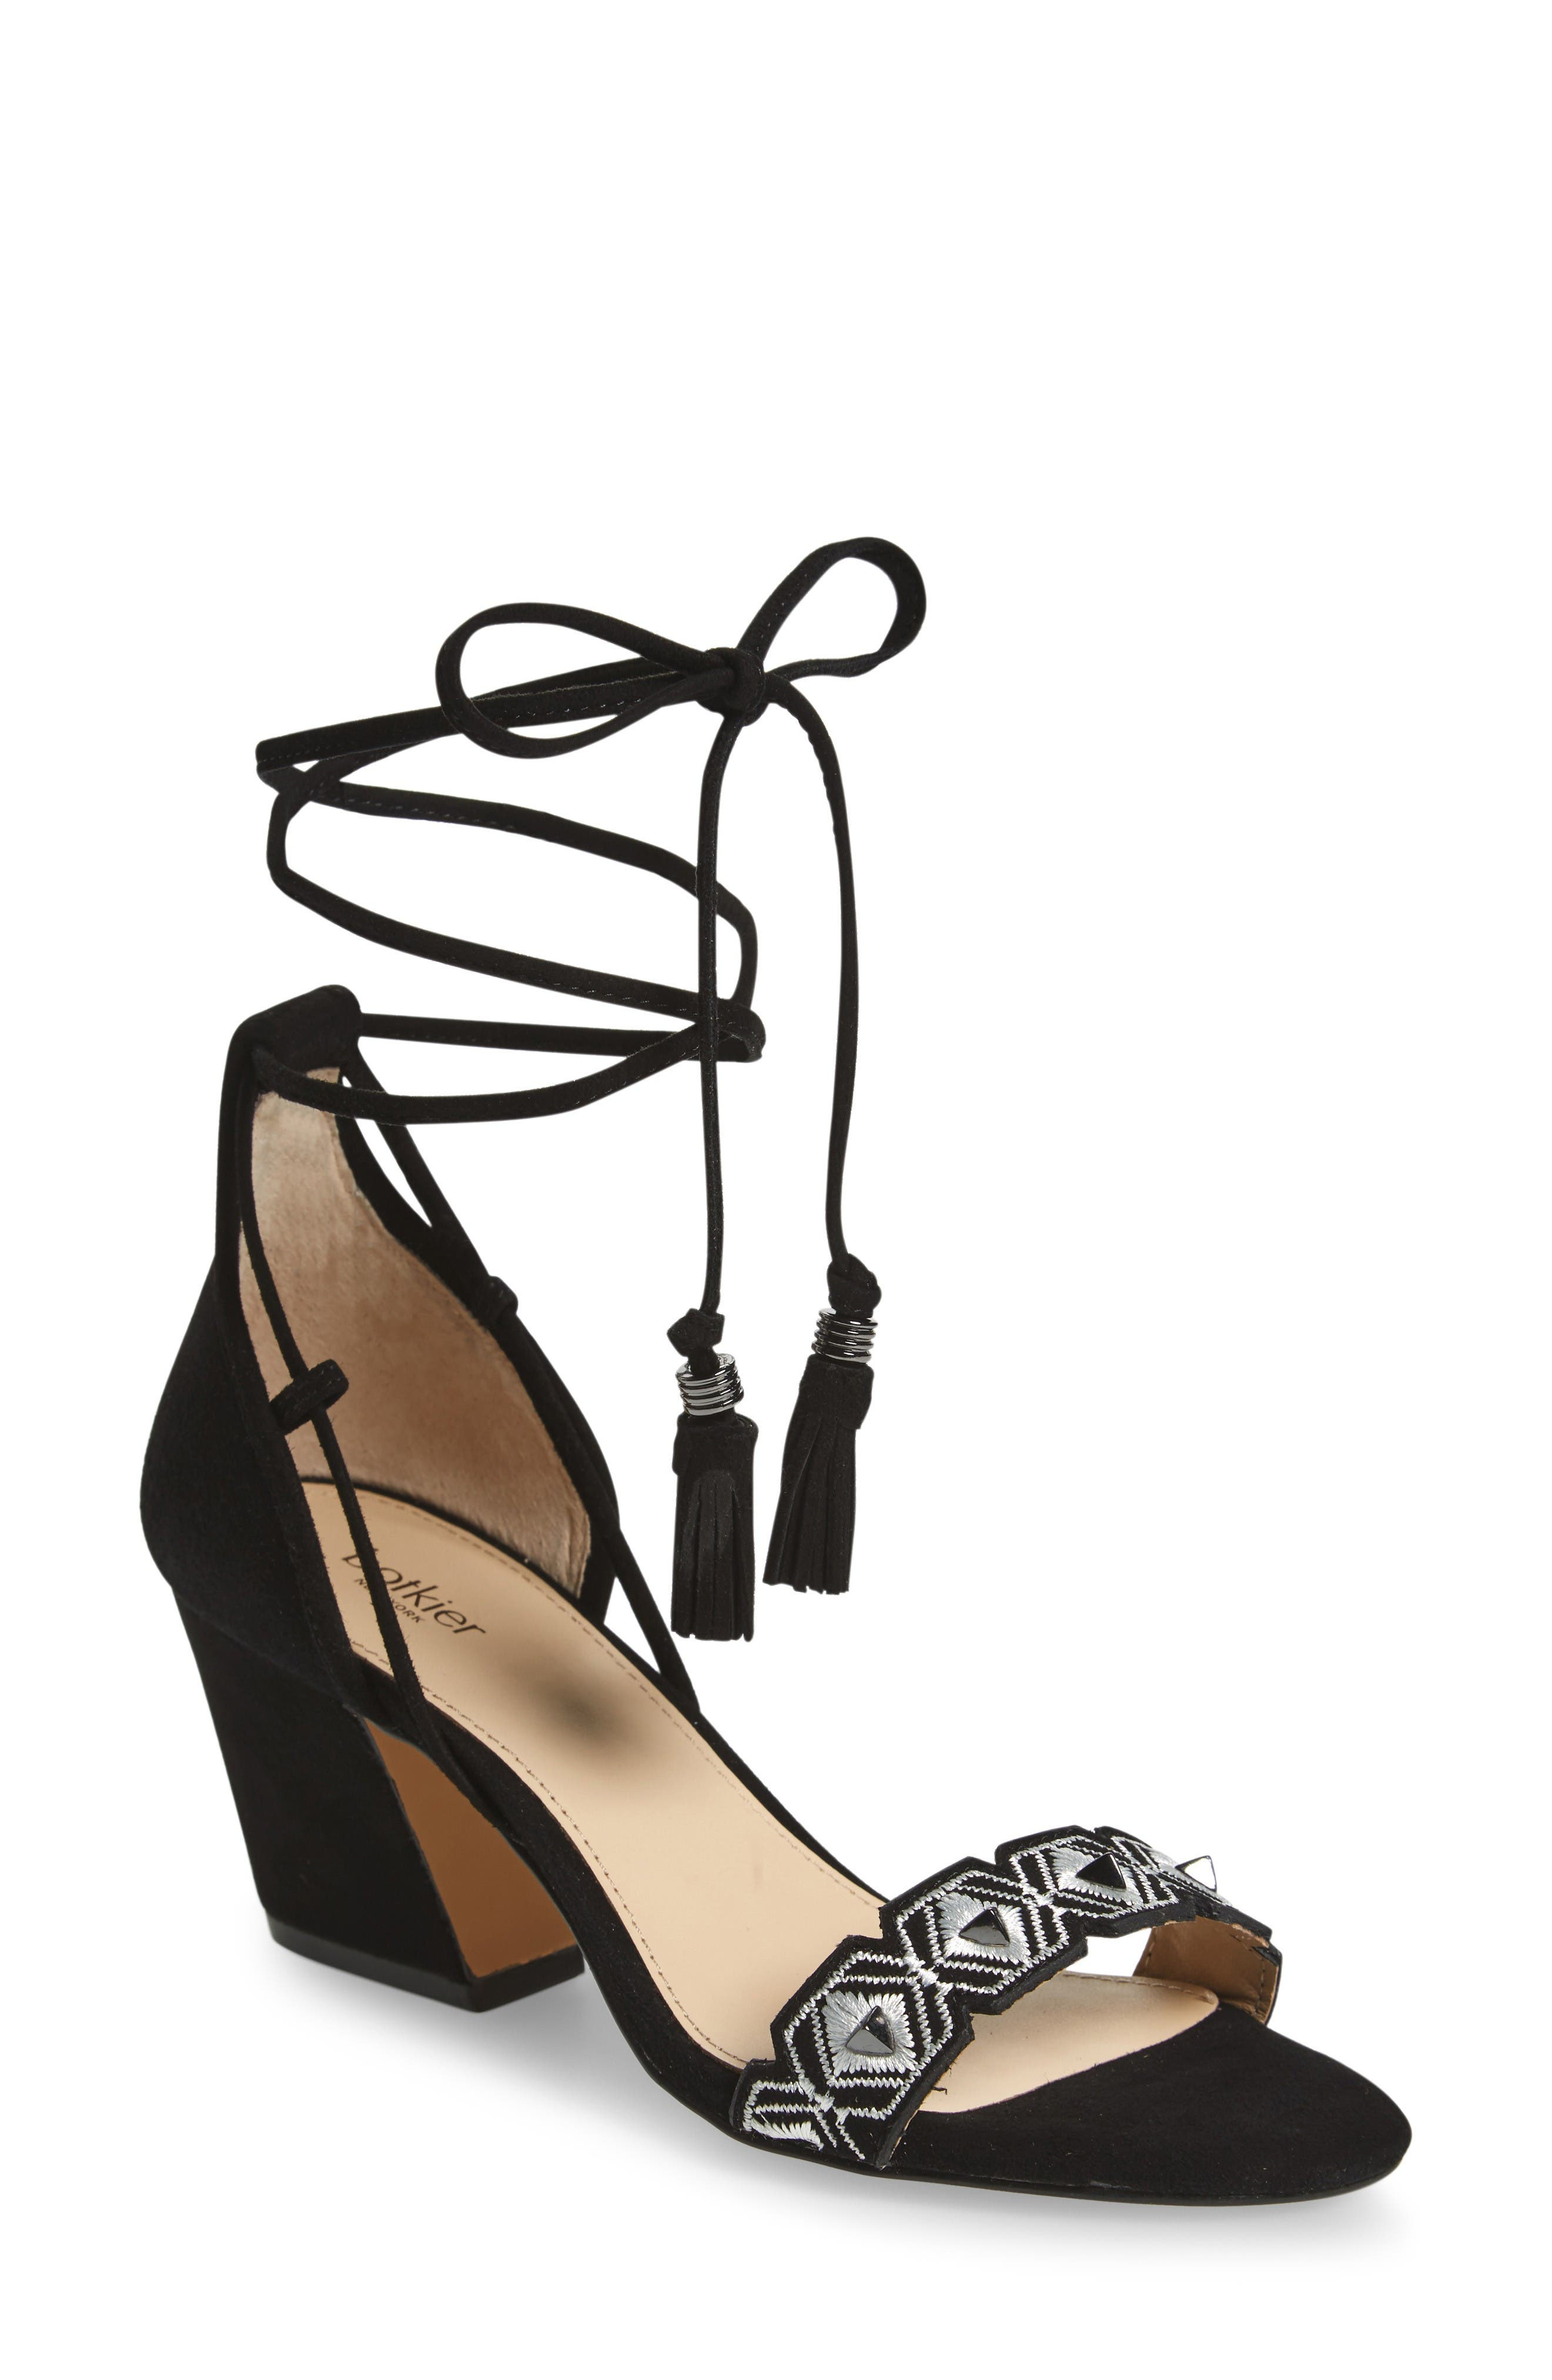 Main Image - Botkier Penelope Embroidered Ankle Wrap Sandal (Women)